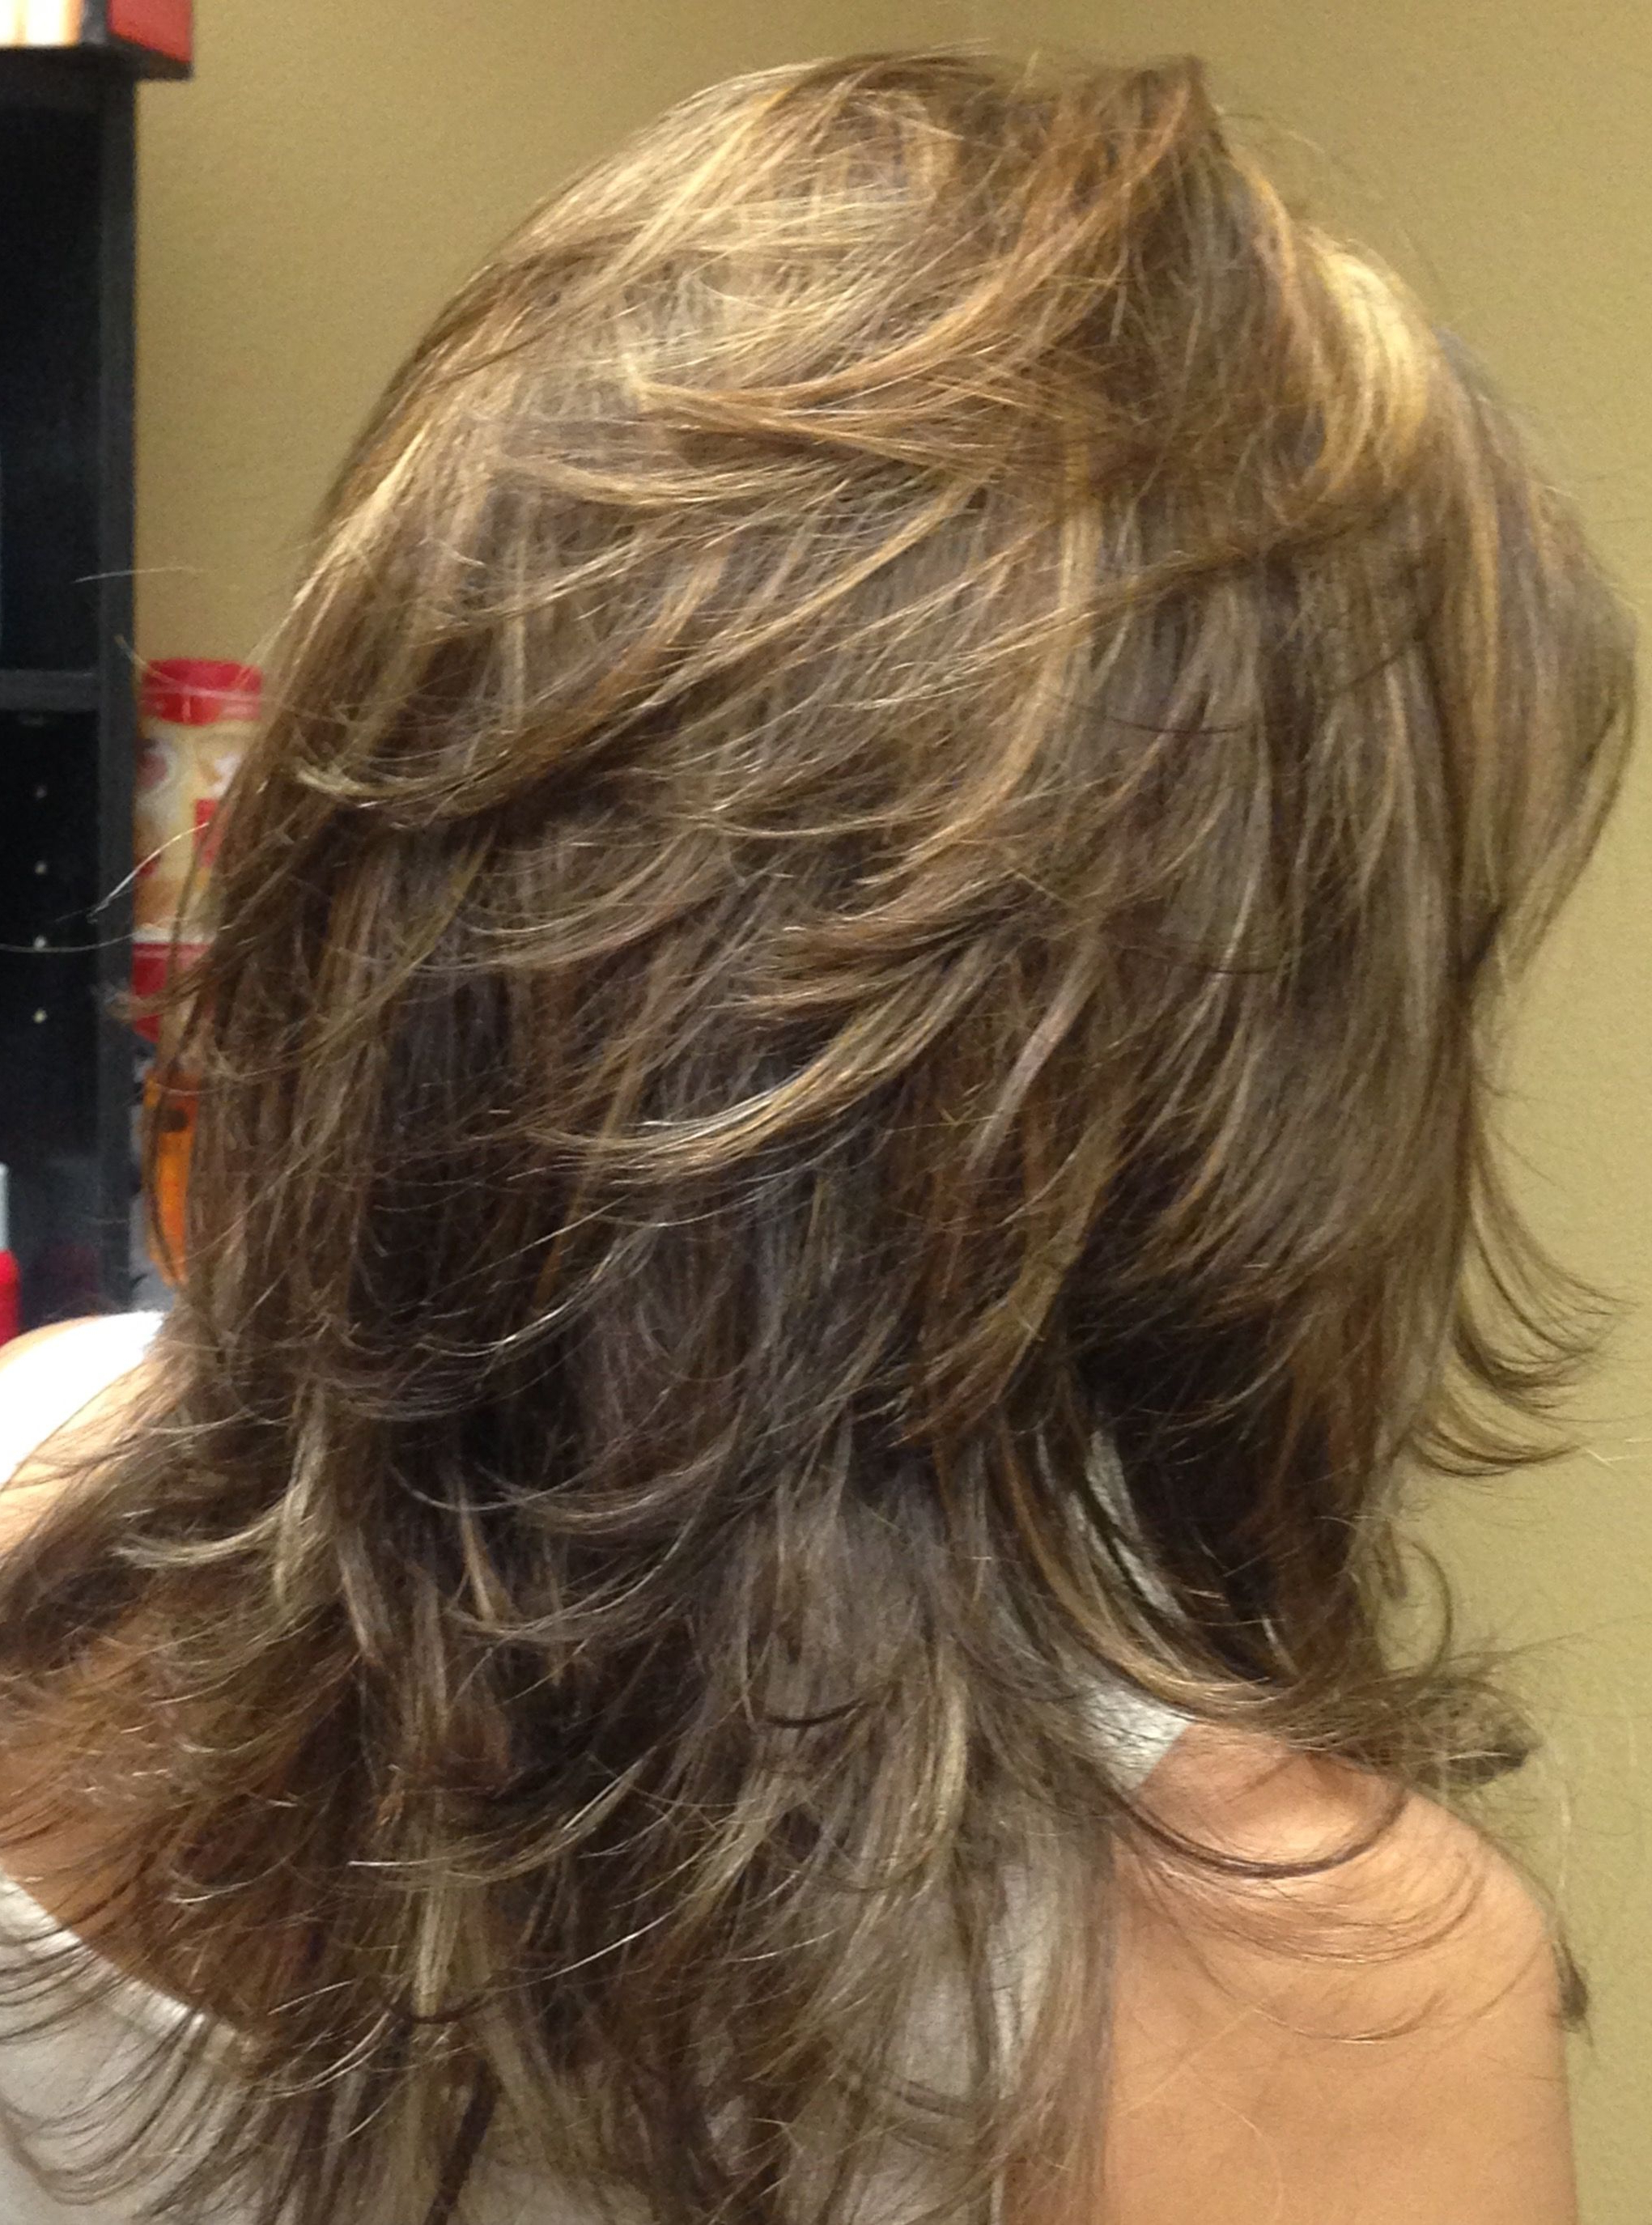 Not A Short Haircut But Too Pretty Not To Save | Hair And Makeup In within Short To Mid Length Layered Hairstyles